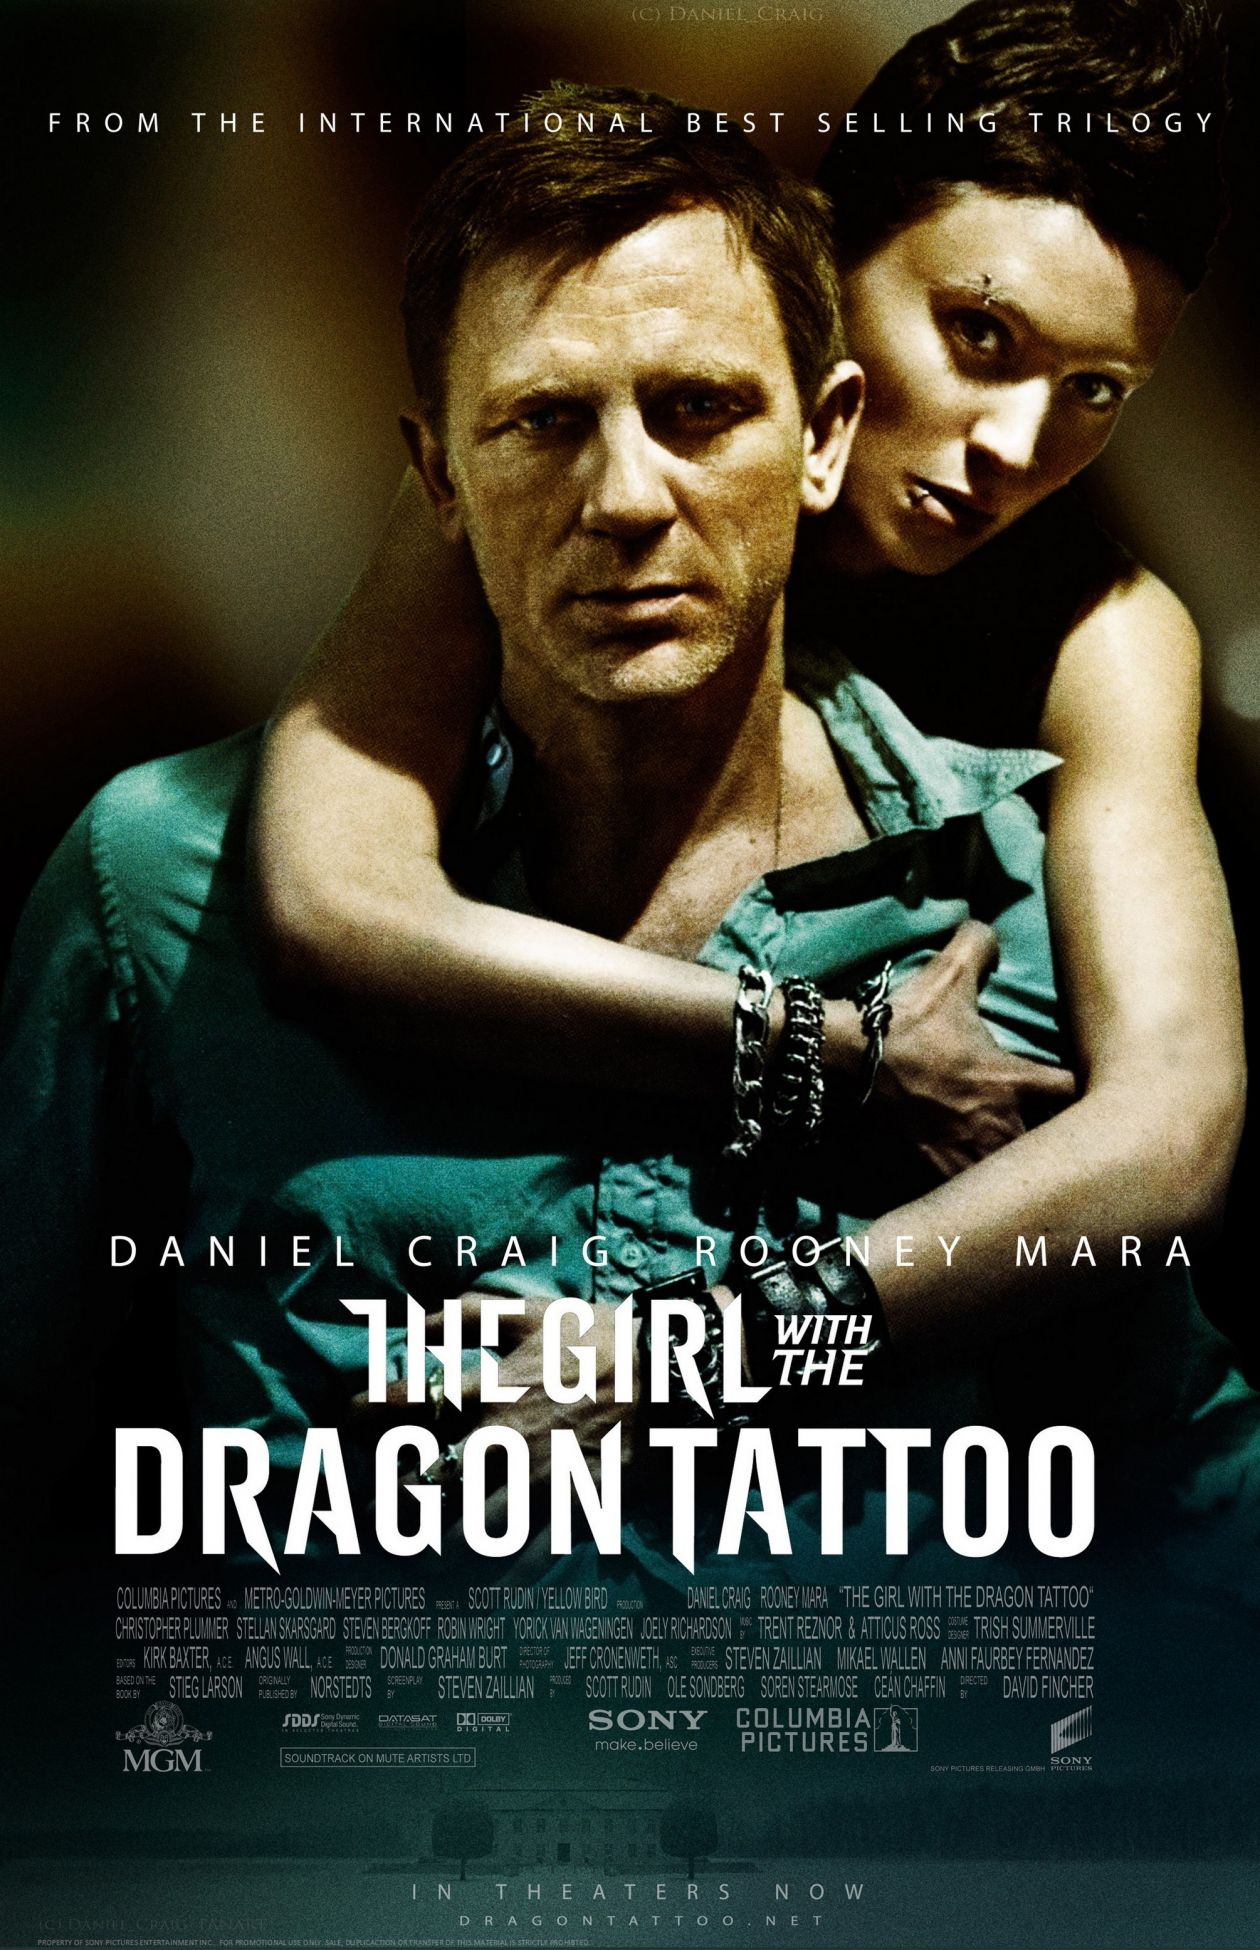 Rooney Mara : Lisbeth Salander  The Girl with the Dragon Tattoo / Millénium : Les Hommes qui n'aimaient pas les femmes  David Fincher 2011